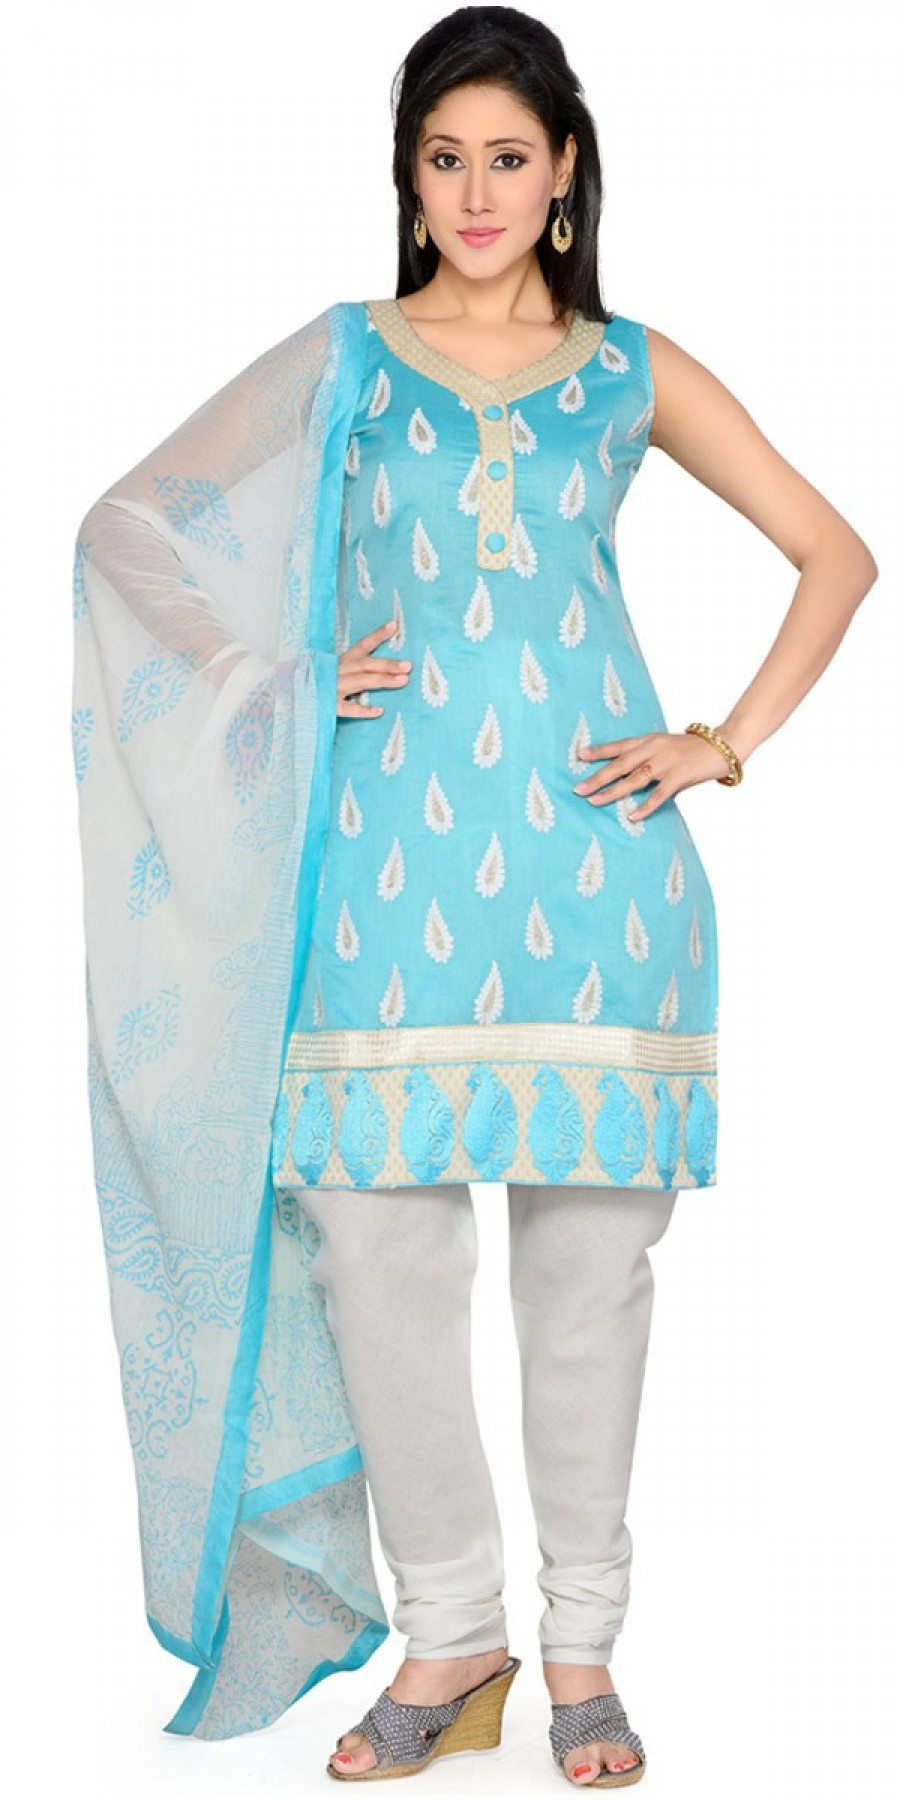 Buy Cheerful Blue And White Cotton Salwar Suit With Dupatta. Online